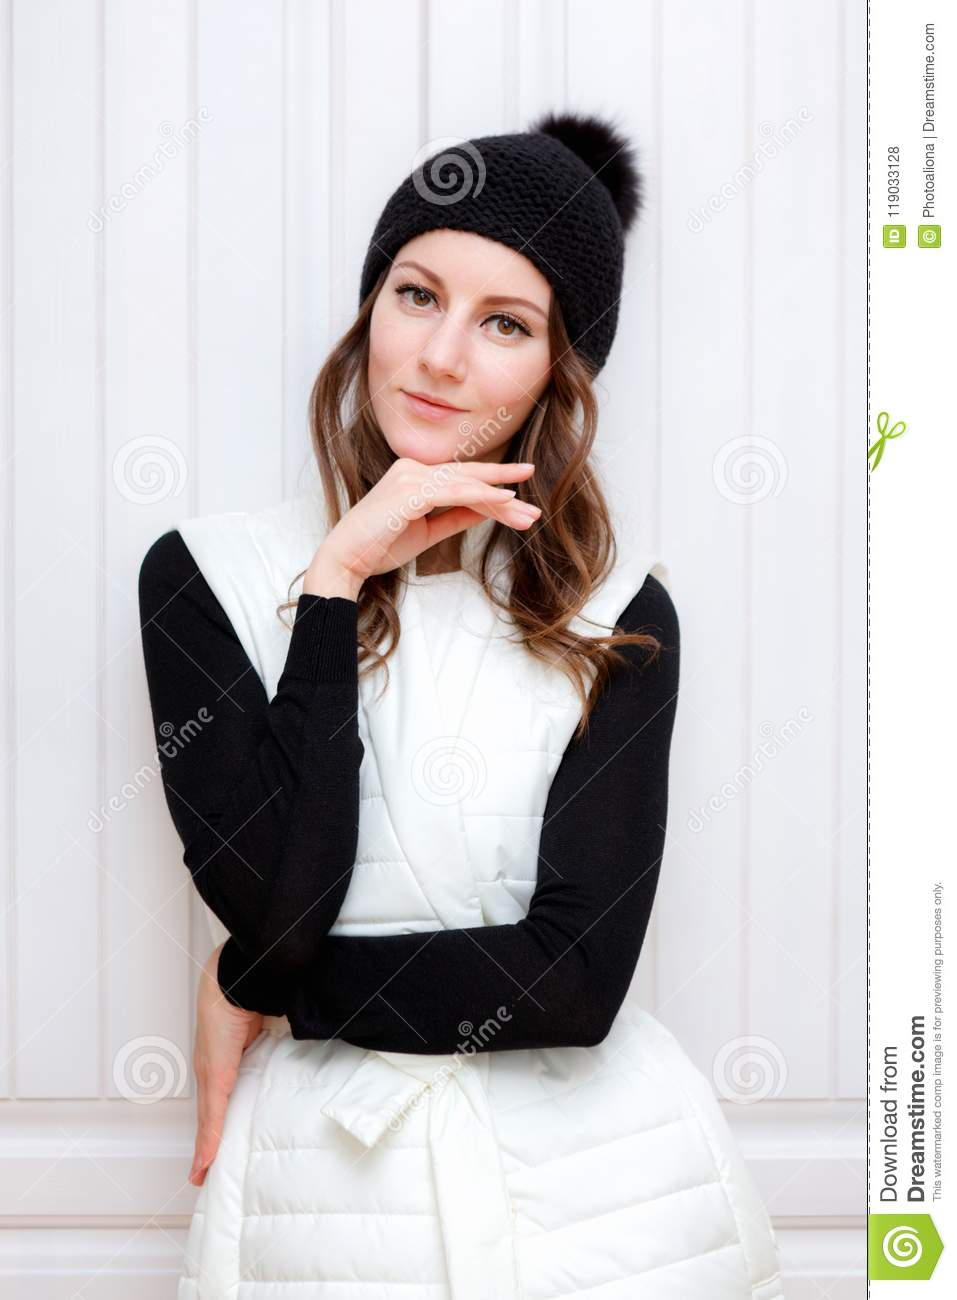 5ca8f7b0217 Hipster Style Brunette Girl Swag wearing Black fashion beanie knitted hat  with bumbon pumpon. Posing on a white wooden wardrobe background.